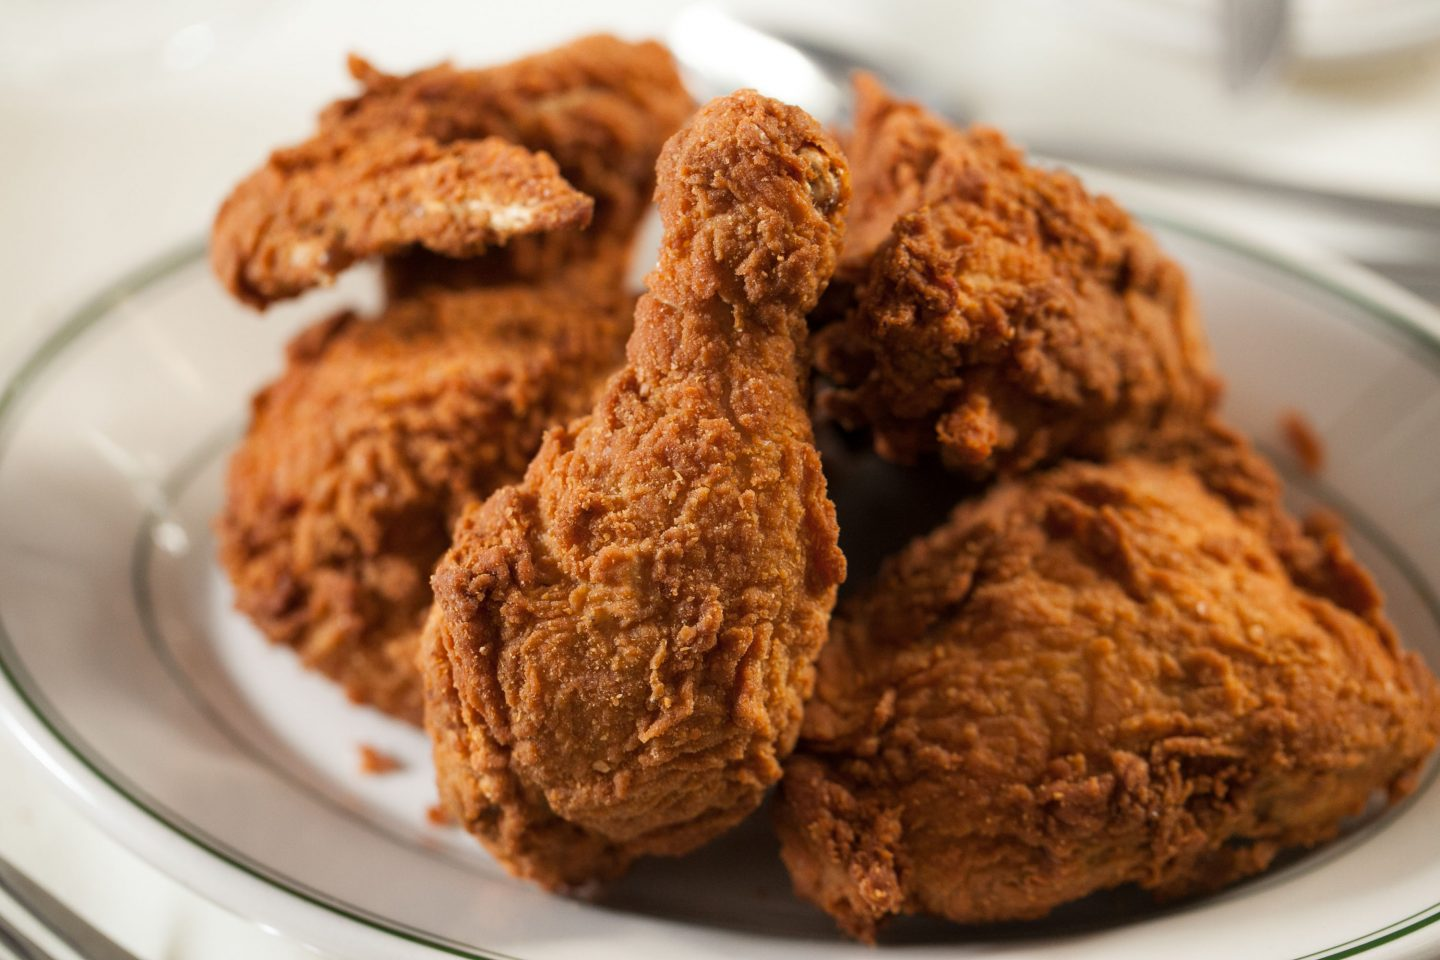 Joe's iconic fried chicken